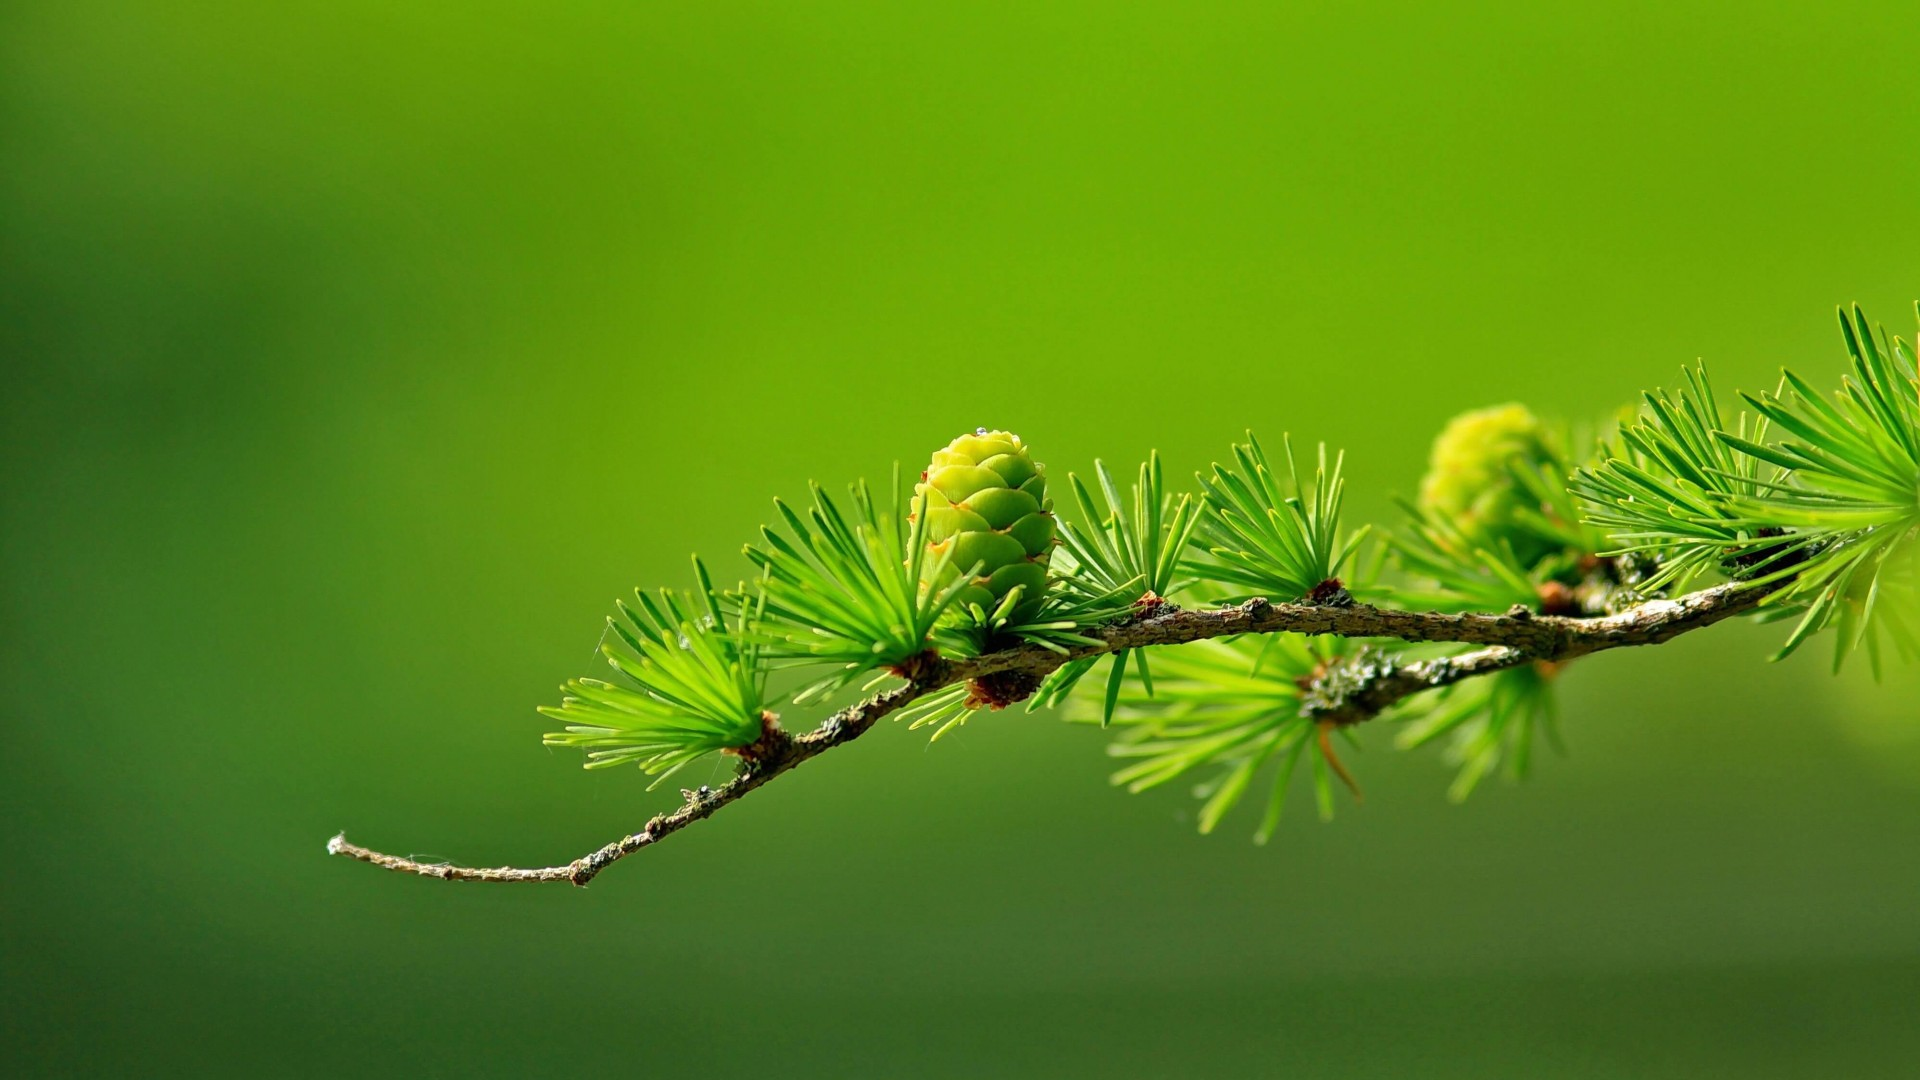 Branch of Pine Tree Wallpaper for Desktop 1920x1080